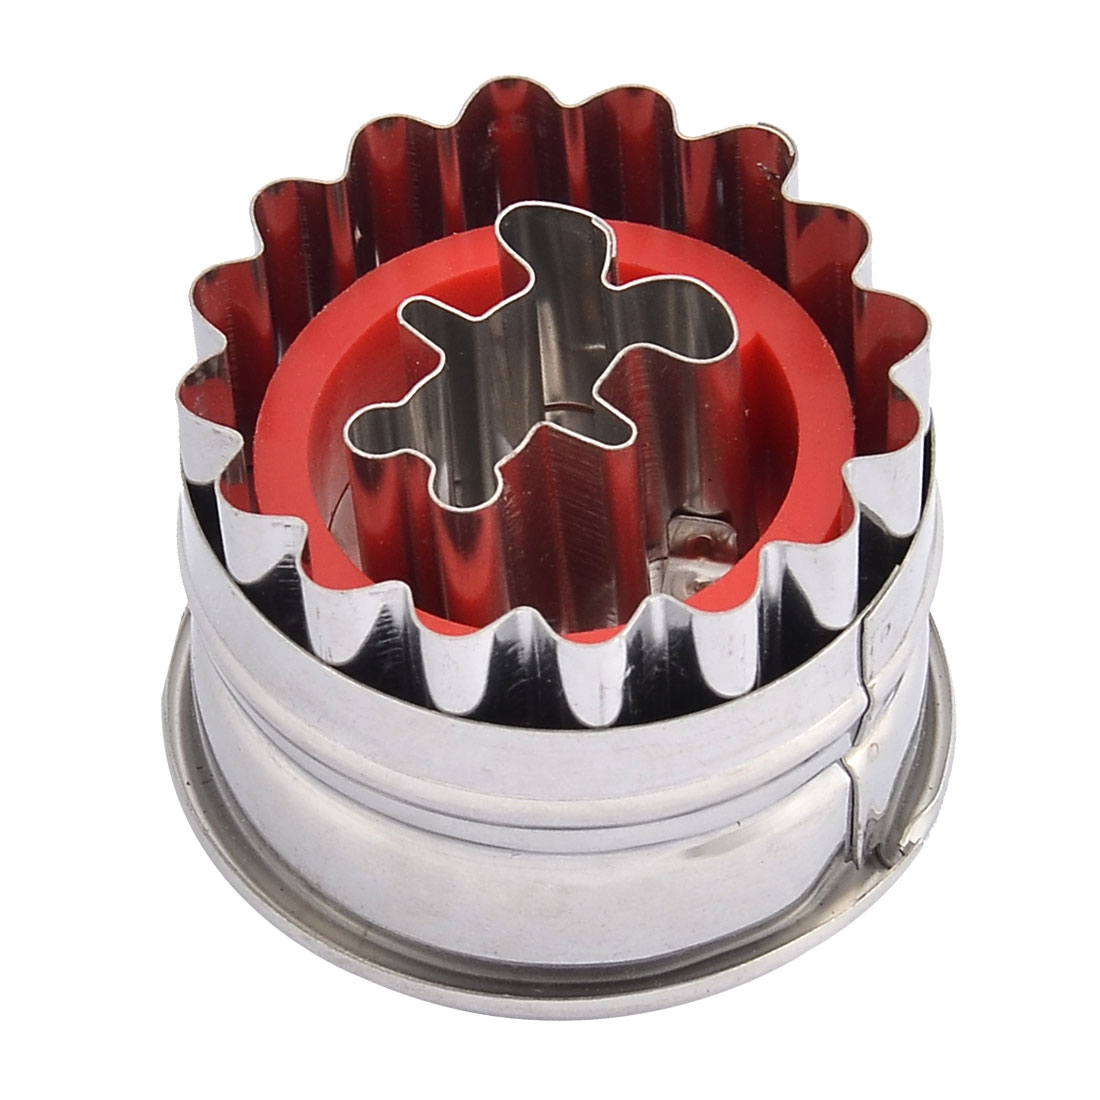 Household Kitchen Metal Bear Shaped Round Spring Cake Cookie Cutter Mould Mold